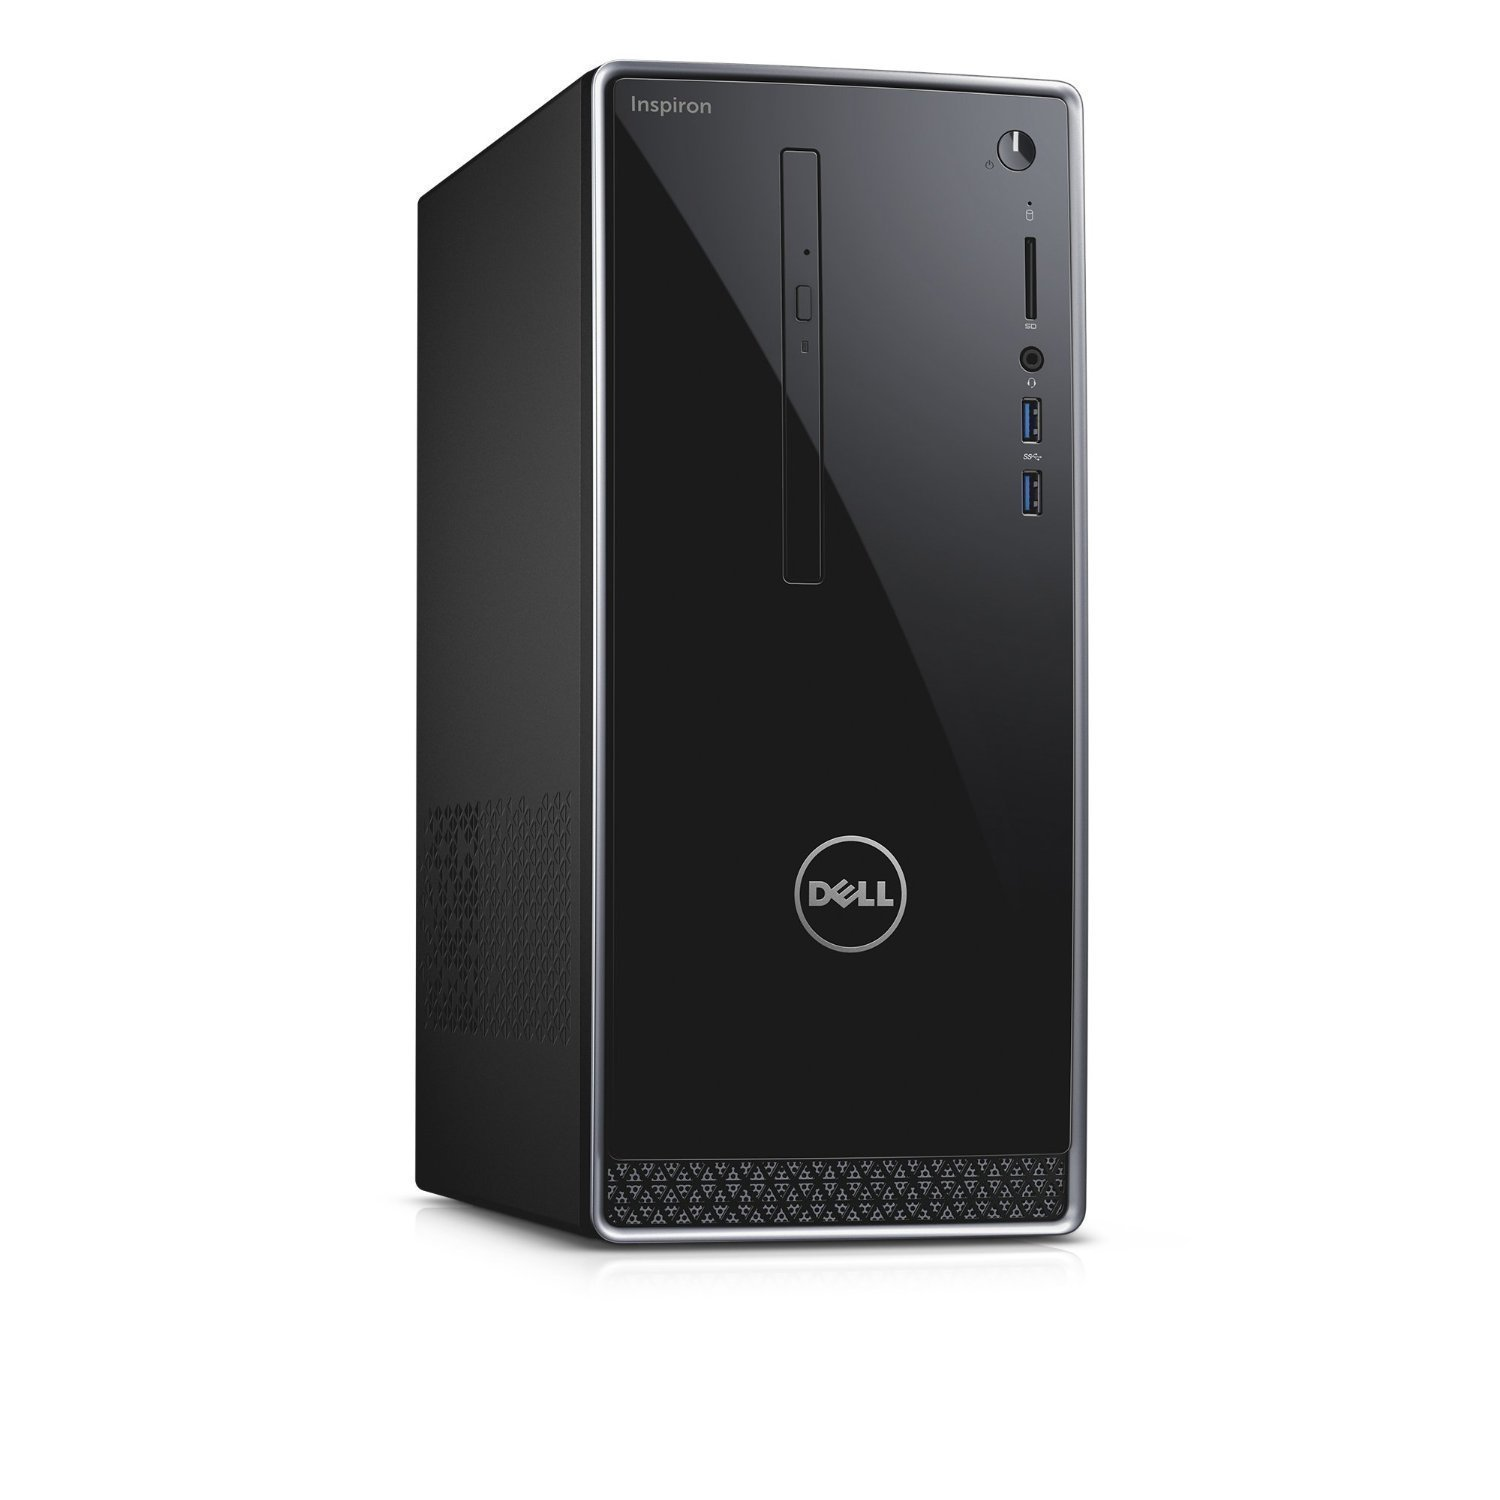 Dell Inspiron Flagship High Performance Desktop PC | Intel Core i3-6100 | 8GB RAM | 1TB HDD | DVDRW | Windows 7 Professional English 64bit (Includes Windows 10 Pro License) | Keyboard and Mouse by Dell (Image #2)